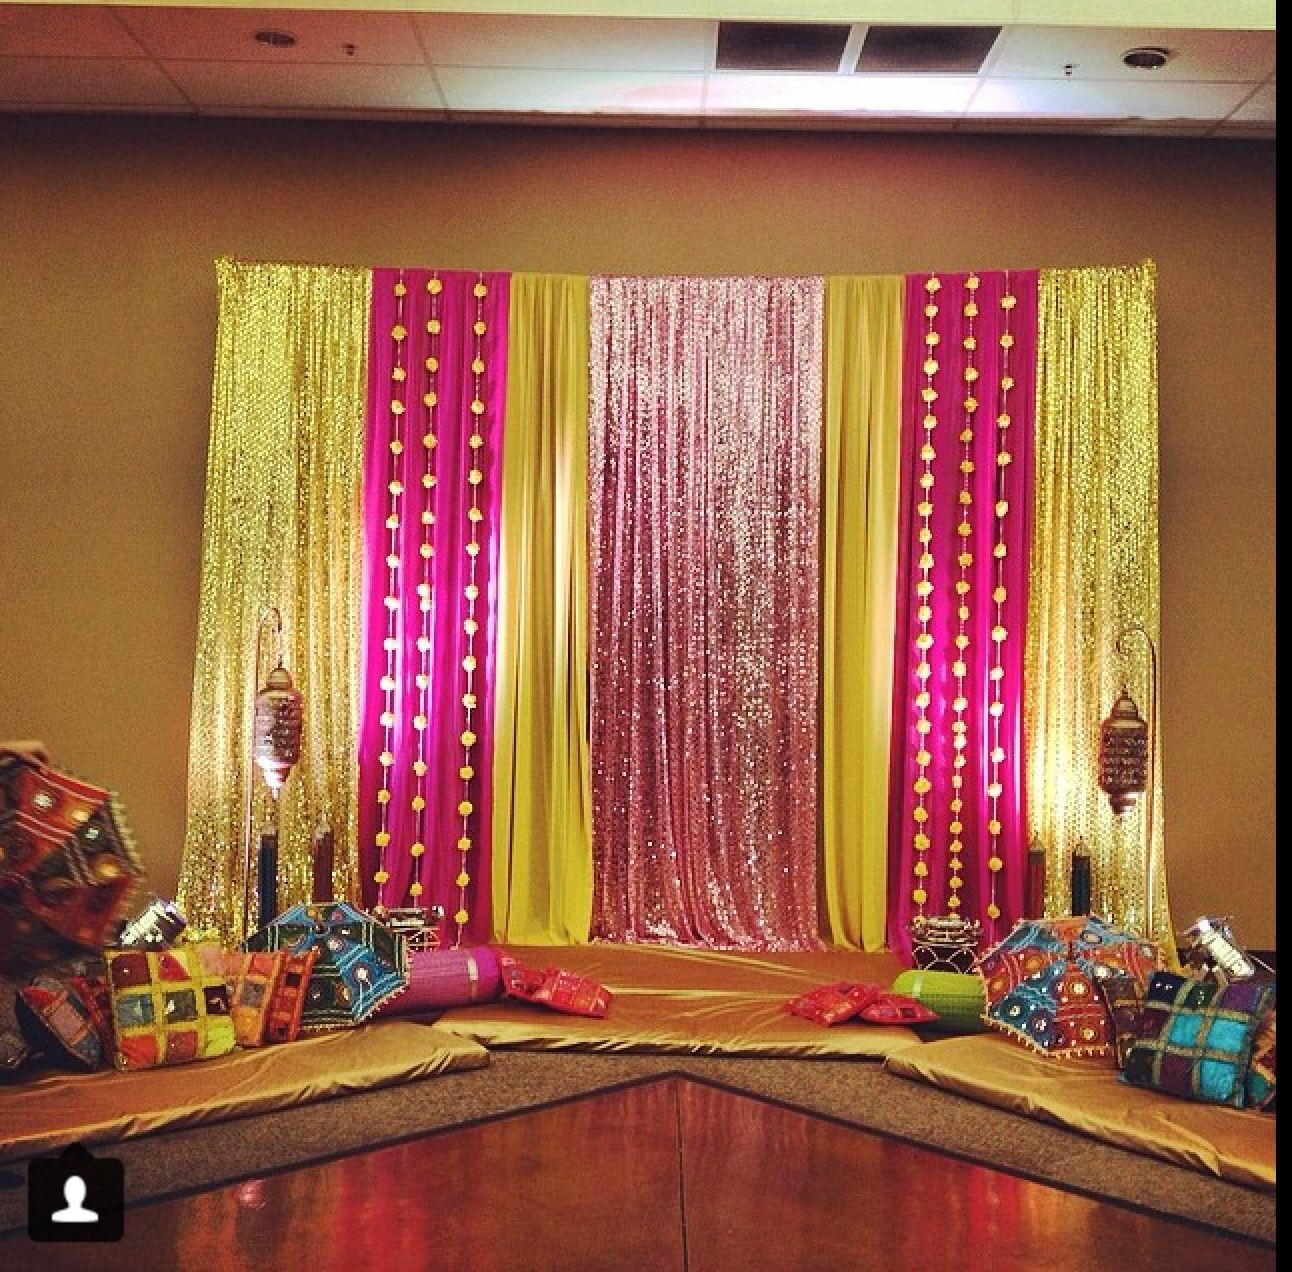 Wedding decoration ideas stage  Pin by Neena Shinde Sawant on decorating ideas  Pinterest